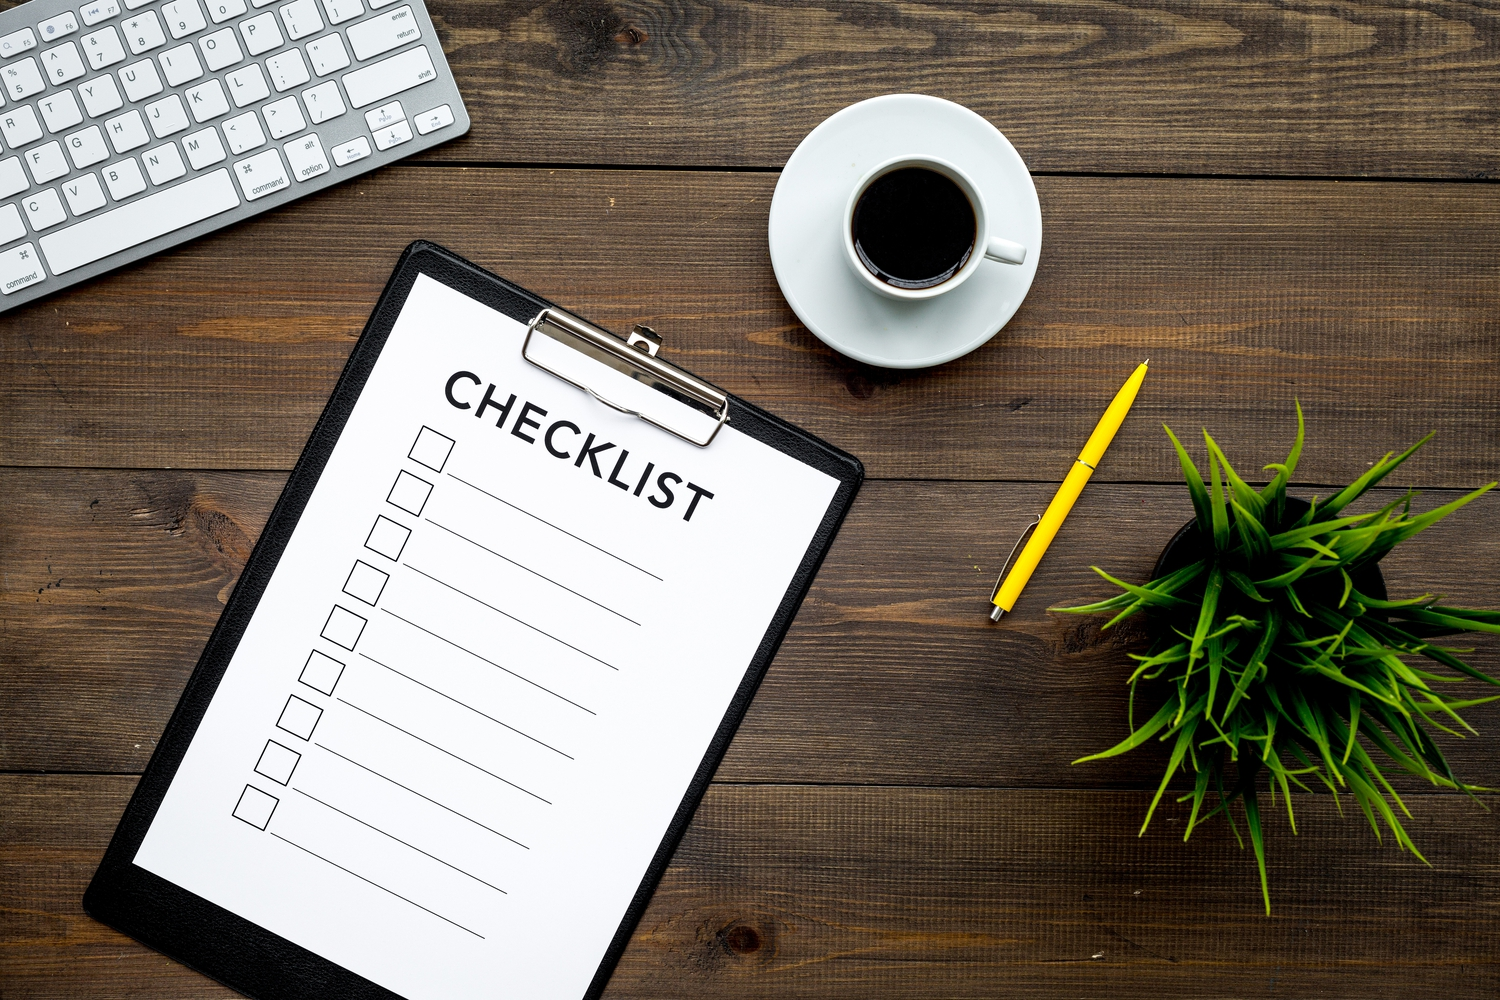 bigstock-Blank-Checklist-With-Space-For-237964300.jpg